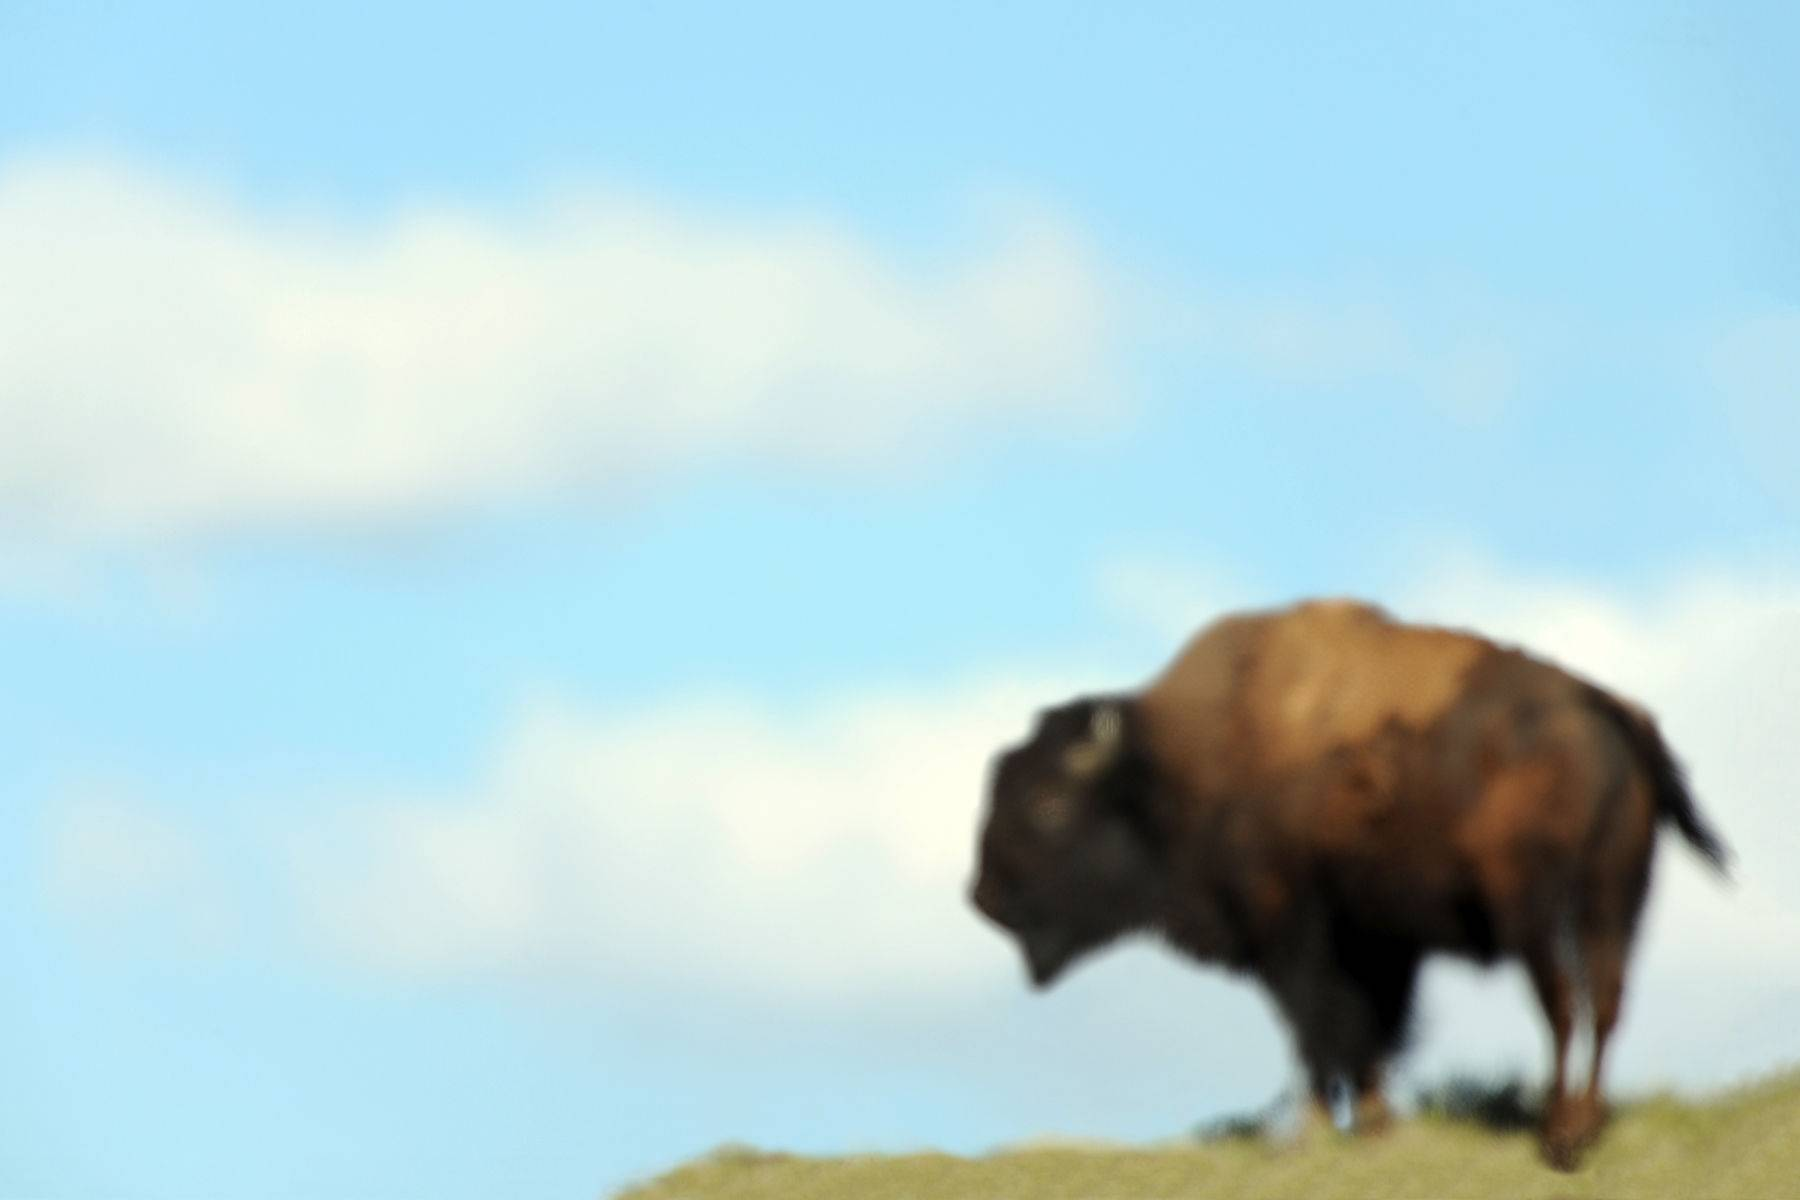 5_1buffalodsc_3719r_forwebsite.jpg